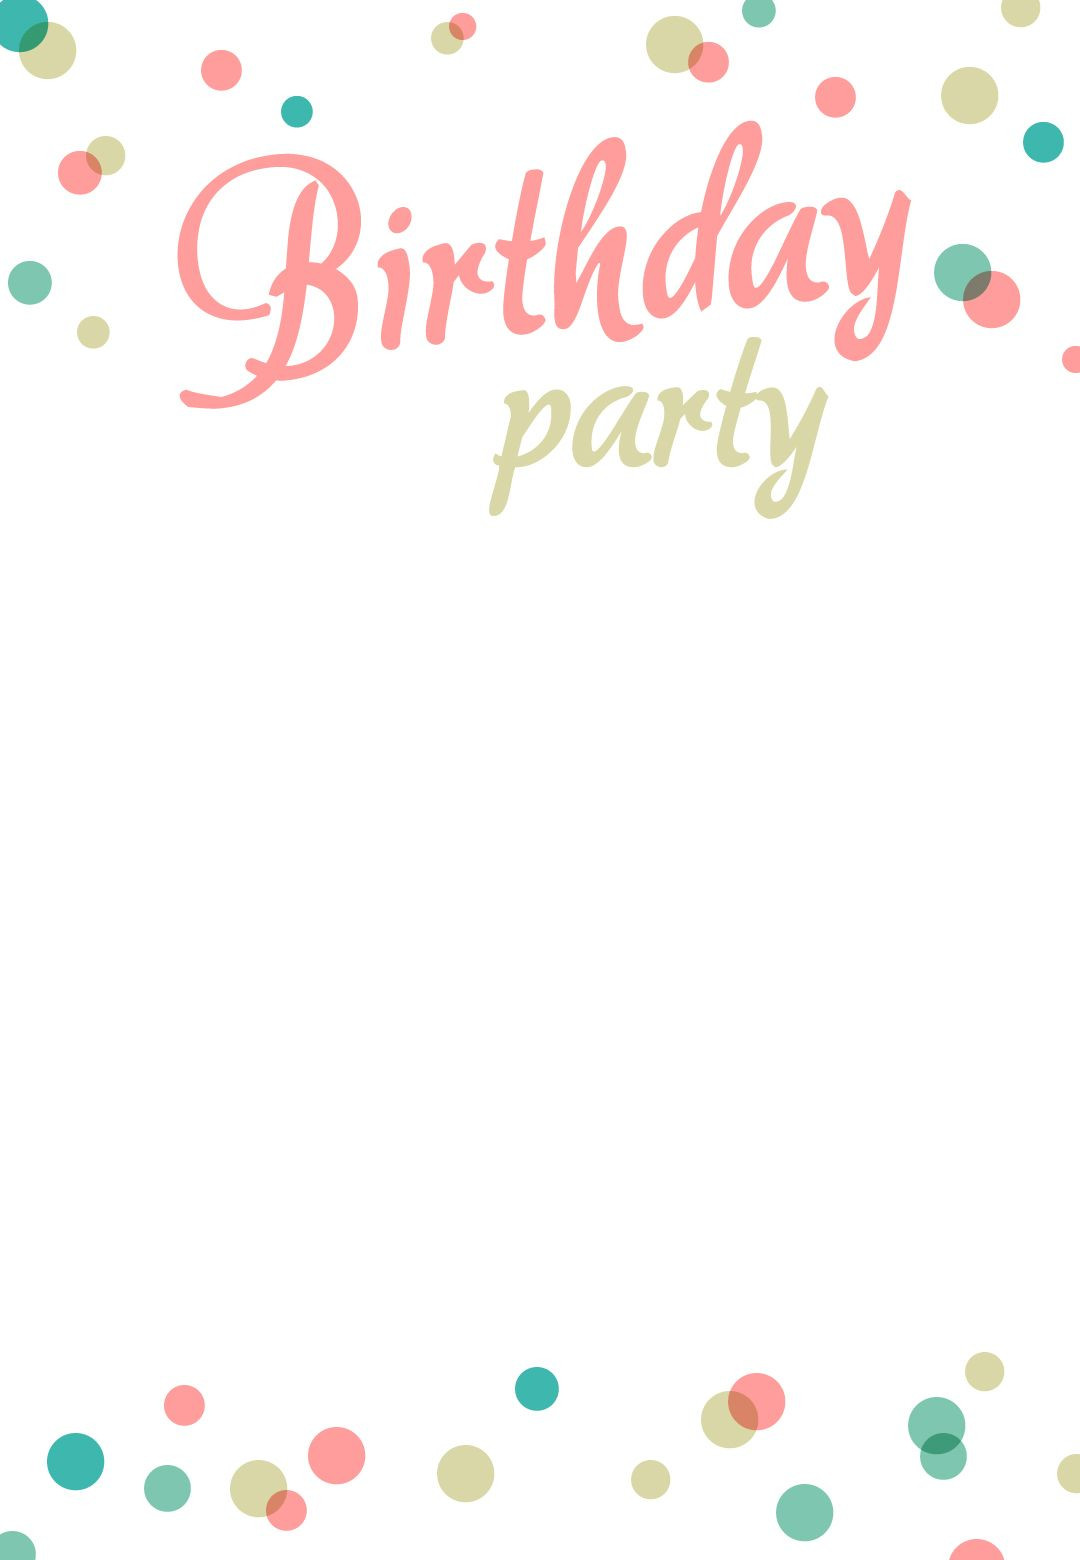 Best ideas about Printable Birthday Invitations . Save or Pin Birthday Party Invitation Free Printable Now.